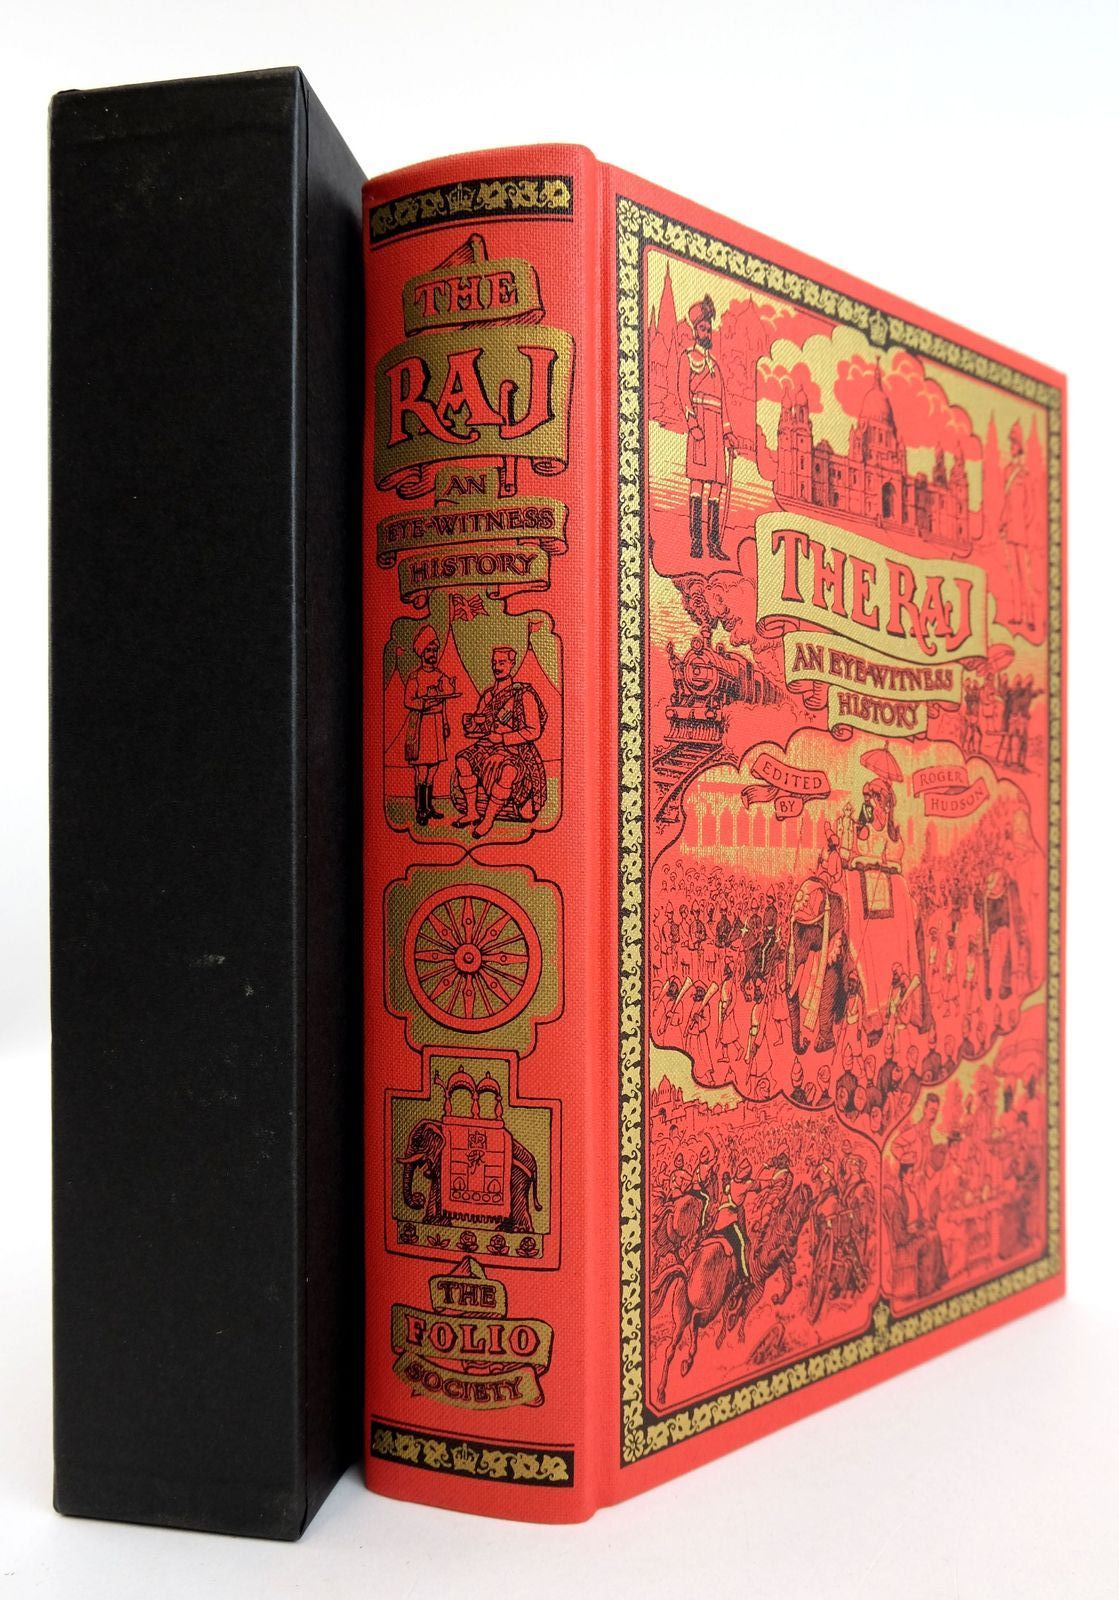 Photo of THE RAJ written by Hudson, Roger published by Folio Society (STOCK CODE: 1819049)  for sale by Stella & Rose's Books